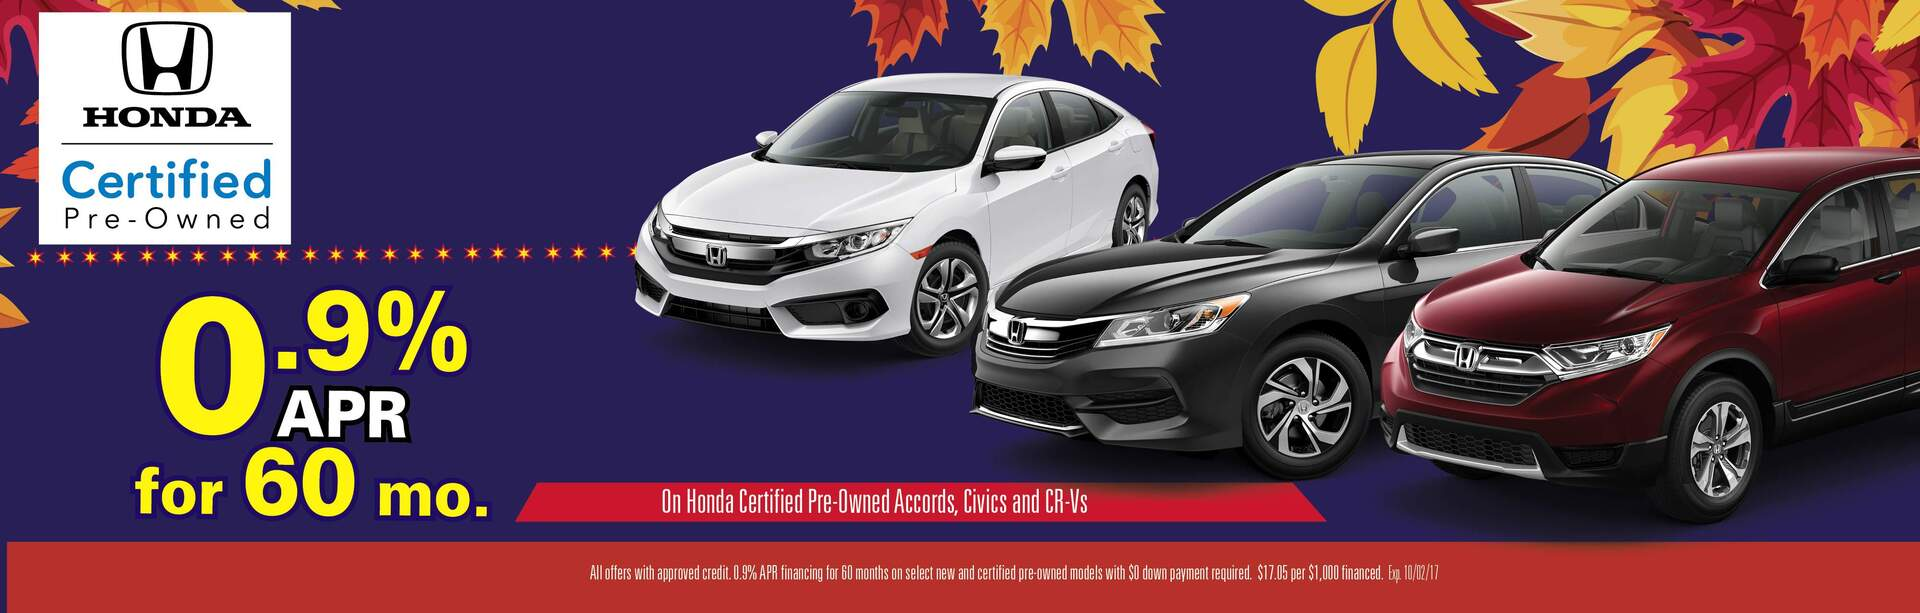 Certified Pre-Owned APR Special